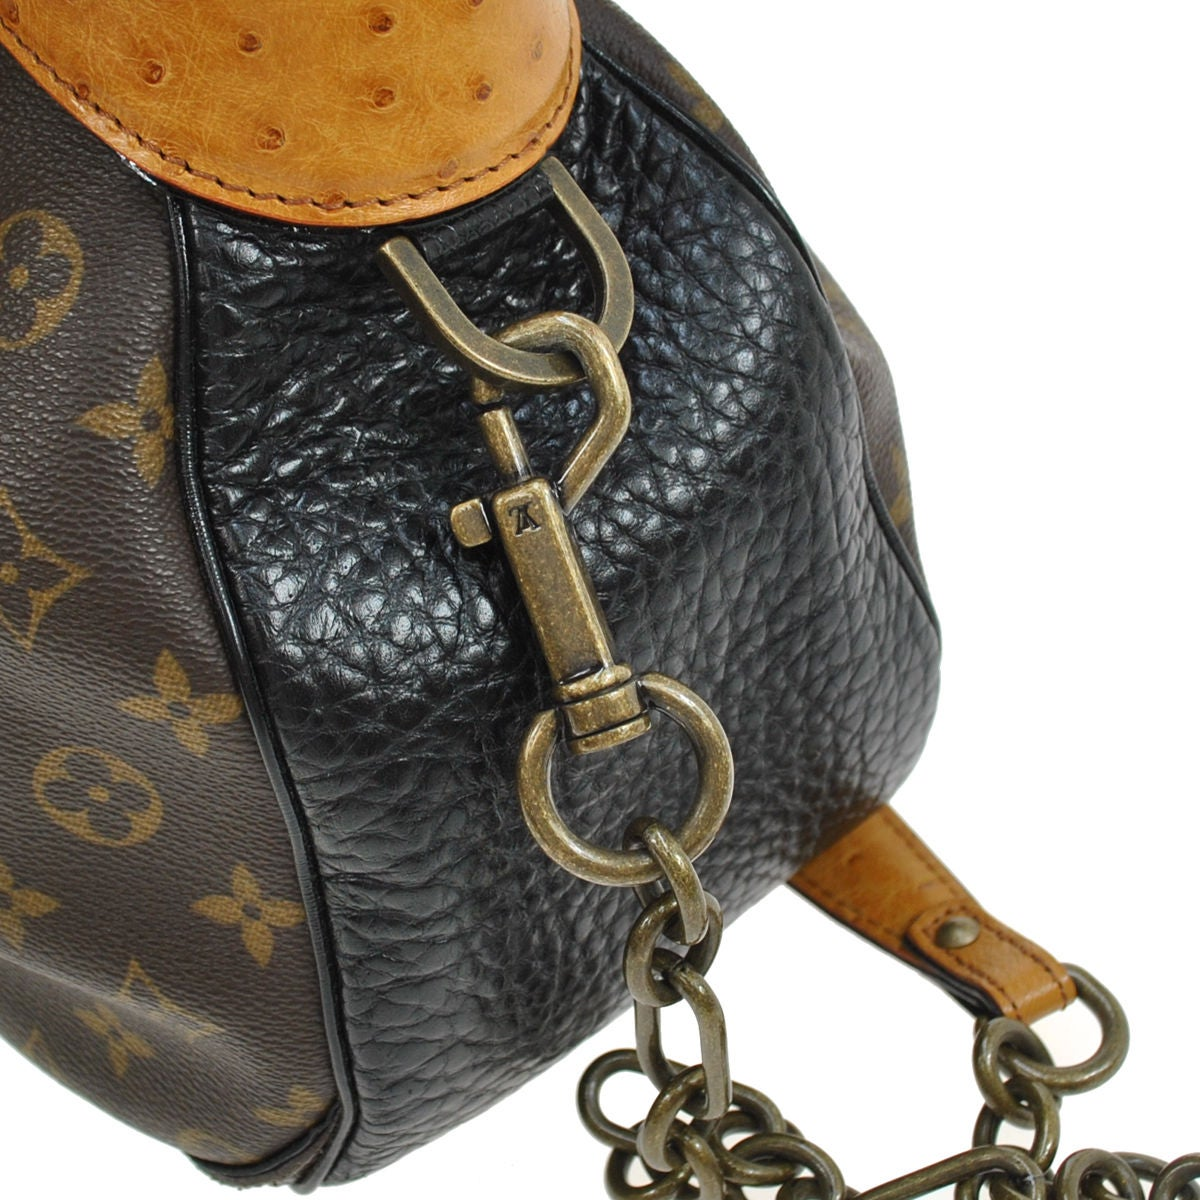 Louis Vuitton Limited Edition Monogram Ostrich Snake Top Handle Shoulder Bag  For Sale at 1stdibs b70f6979b56a4